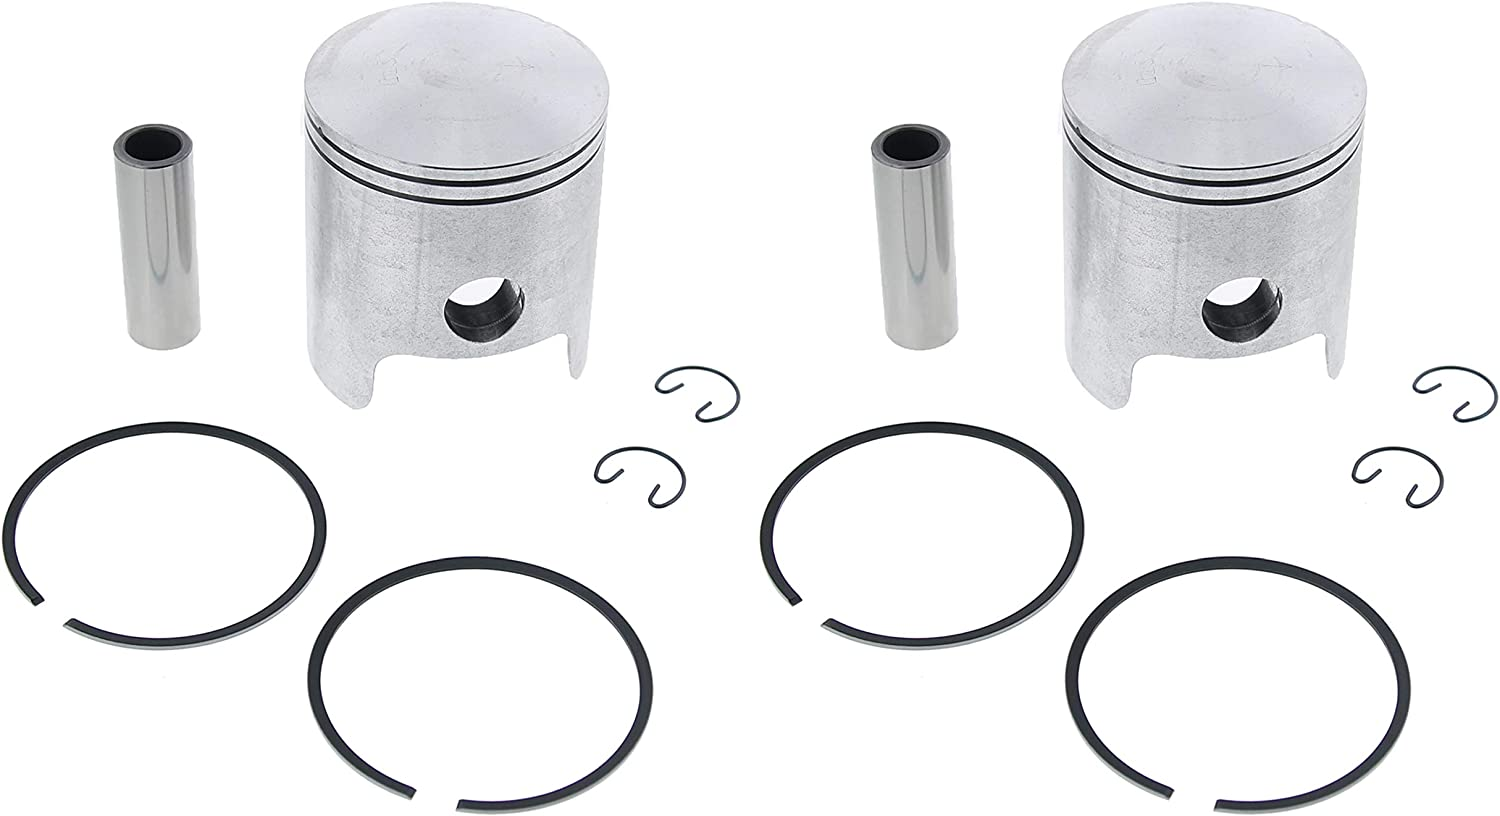 Piston and Gasket Kit fits Yamaha Enticer 340 ET340 1978-1988 by Race-Driven